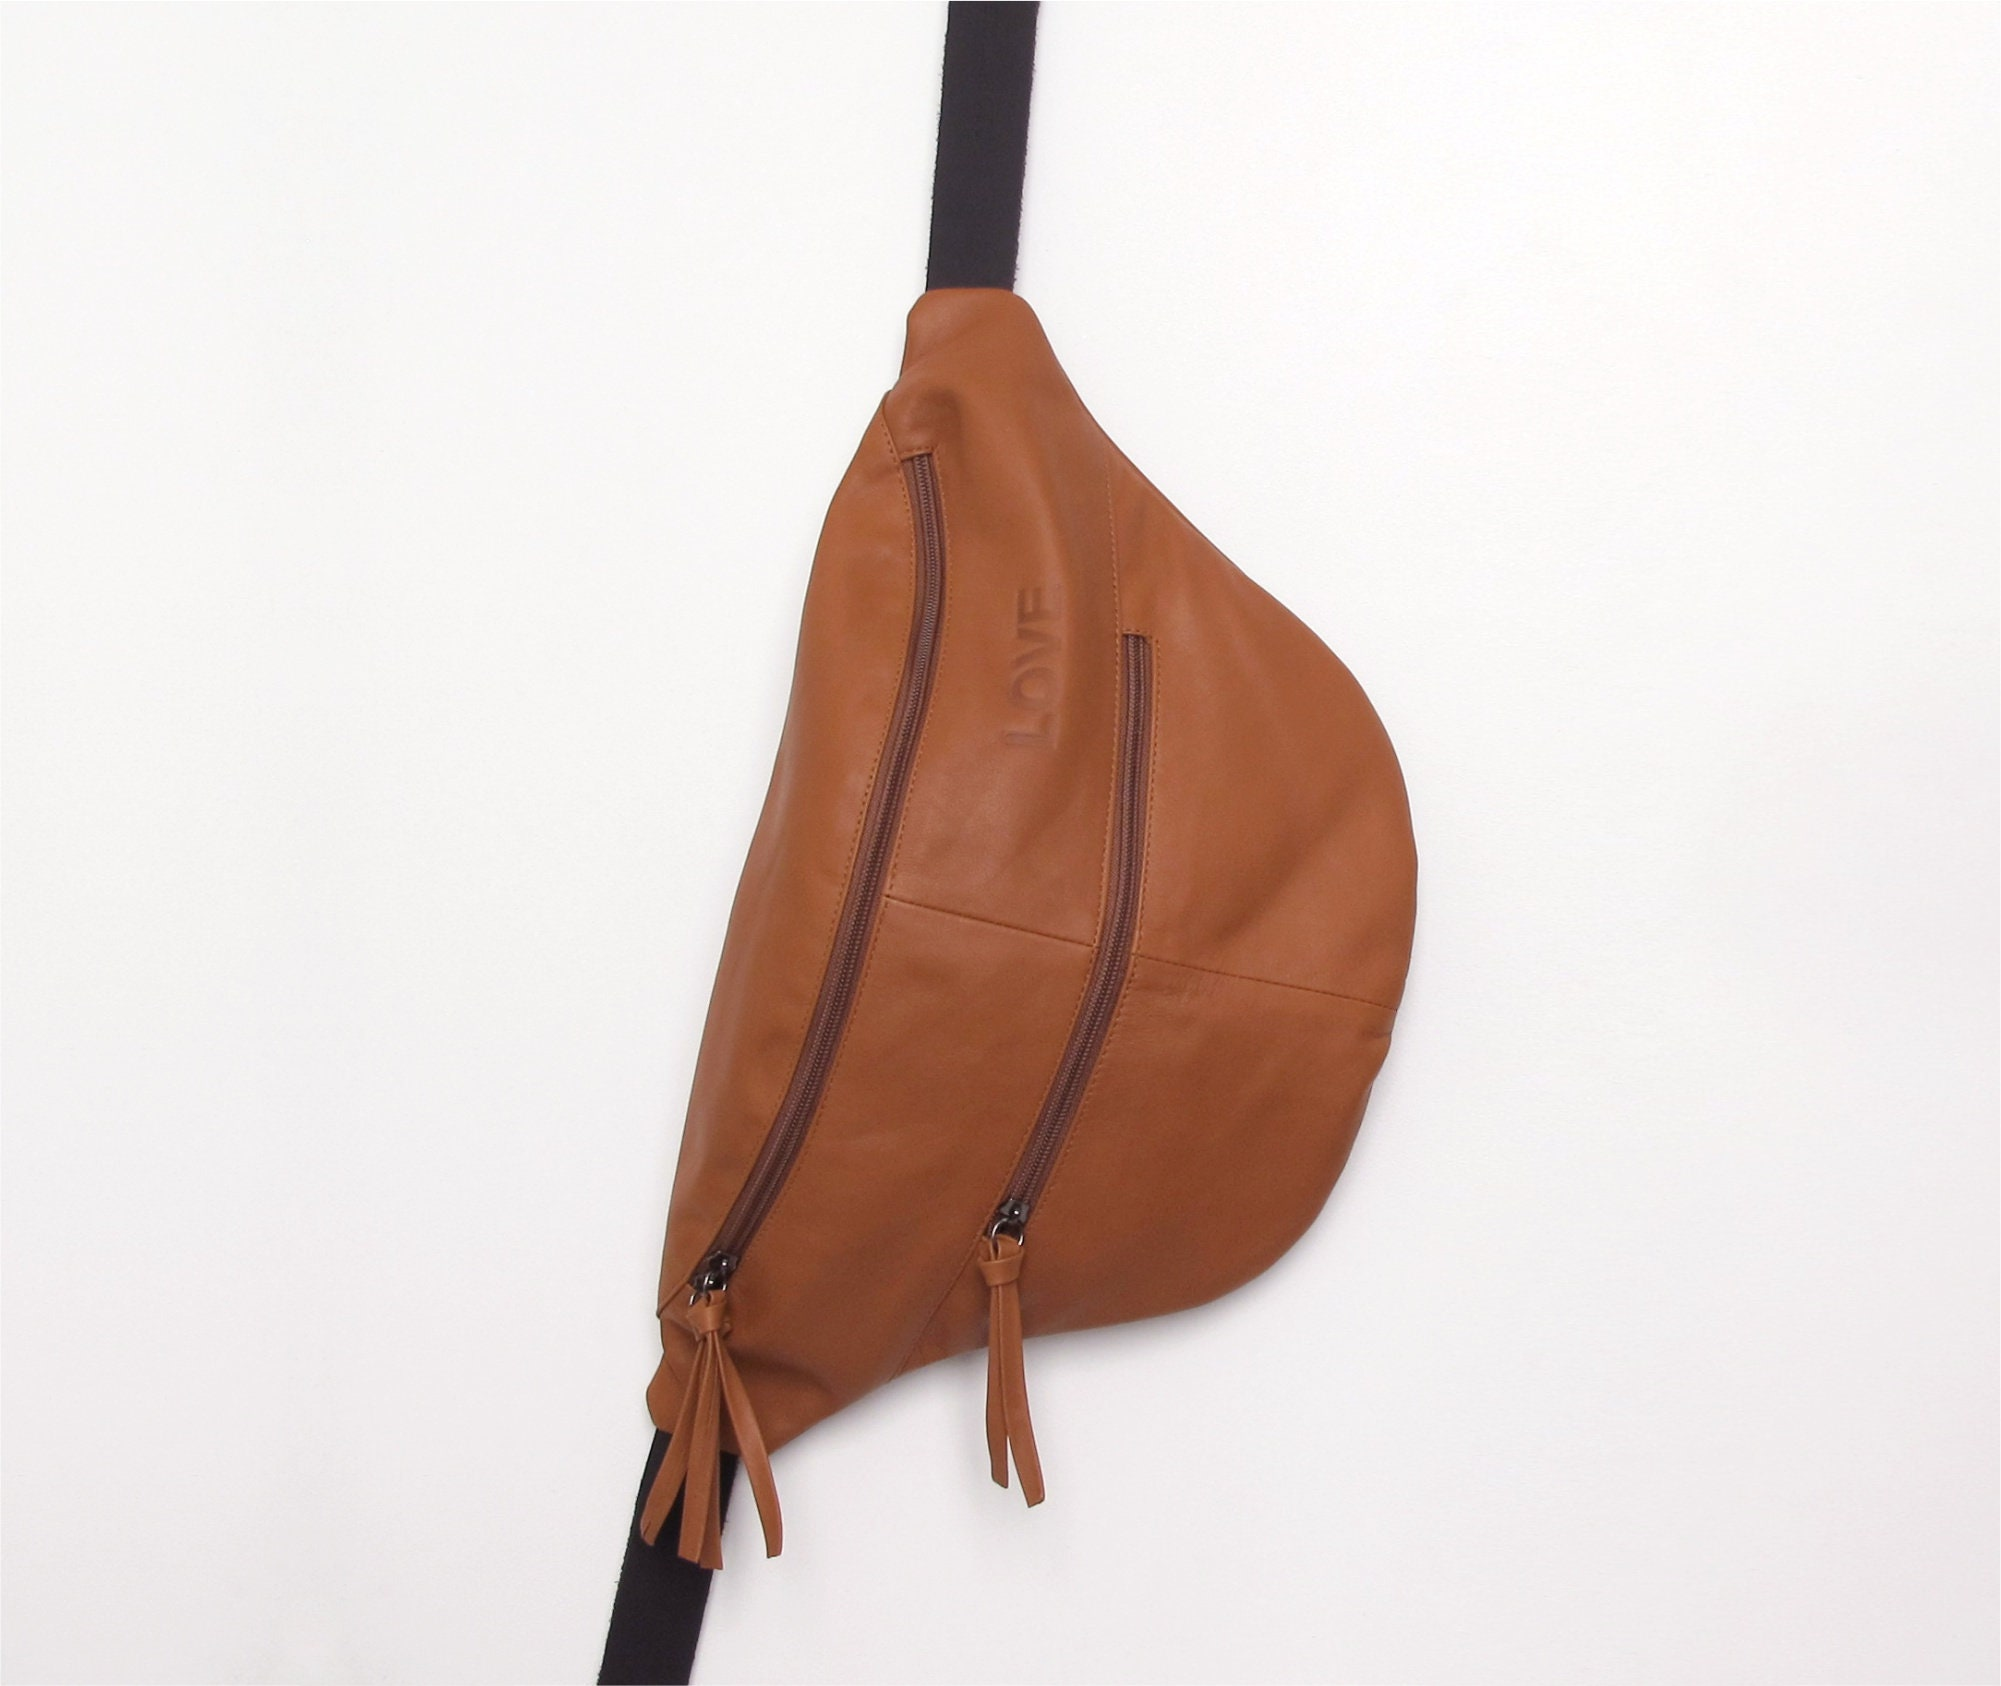 d0e3773d0364 3in1 camel brown leather crossbody bag leather hobo bag-soft leather bag  slouchy leather bag- leather sling bag- Handmade leather bag JUDTLV